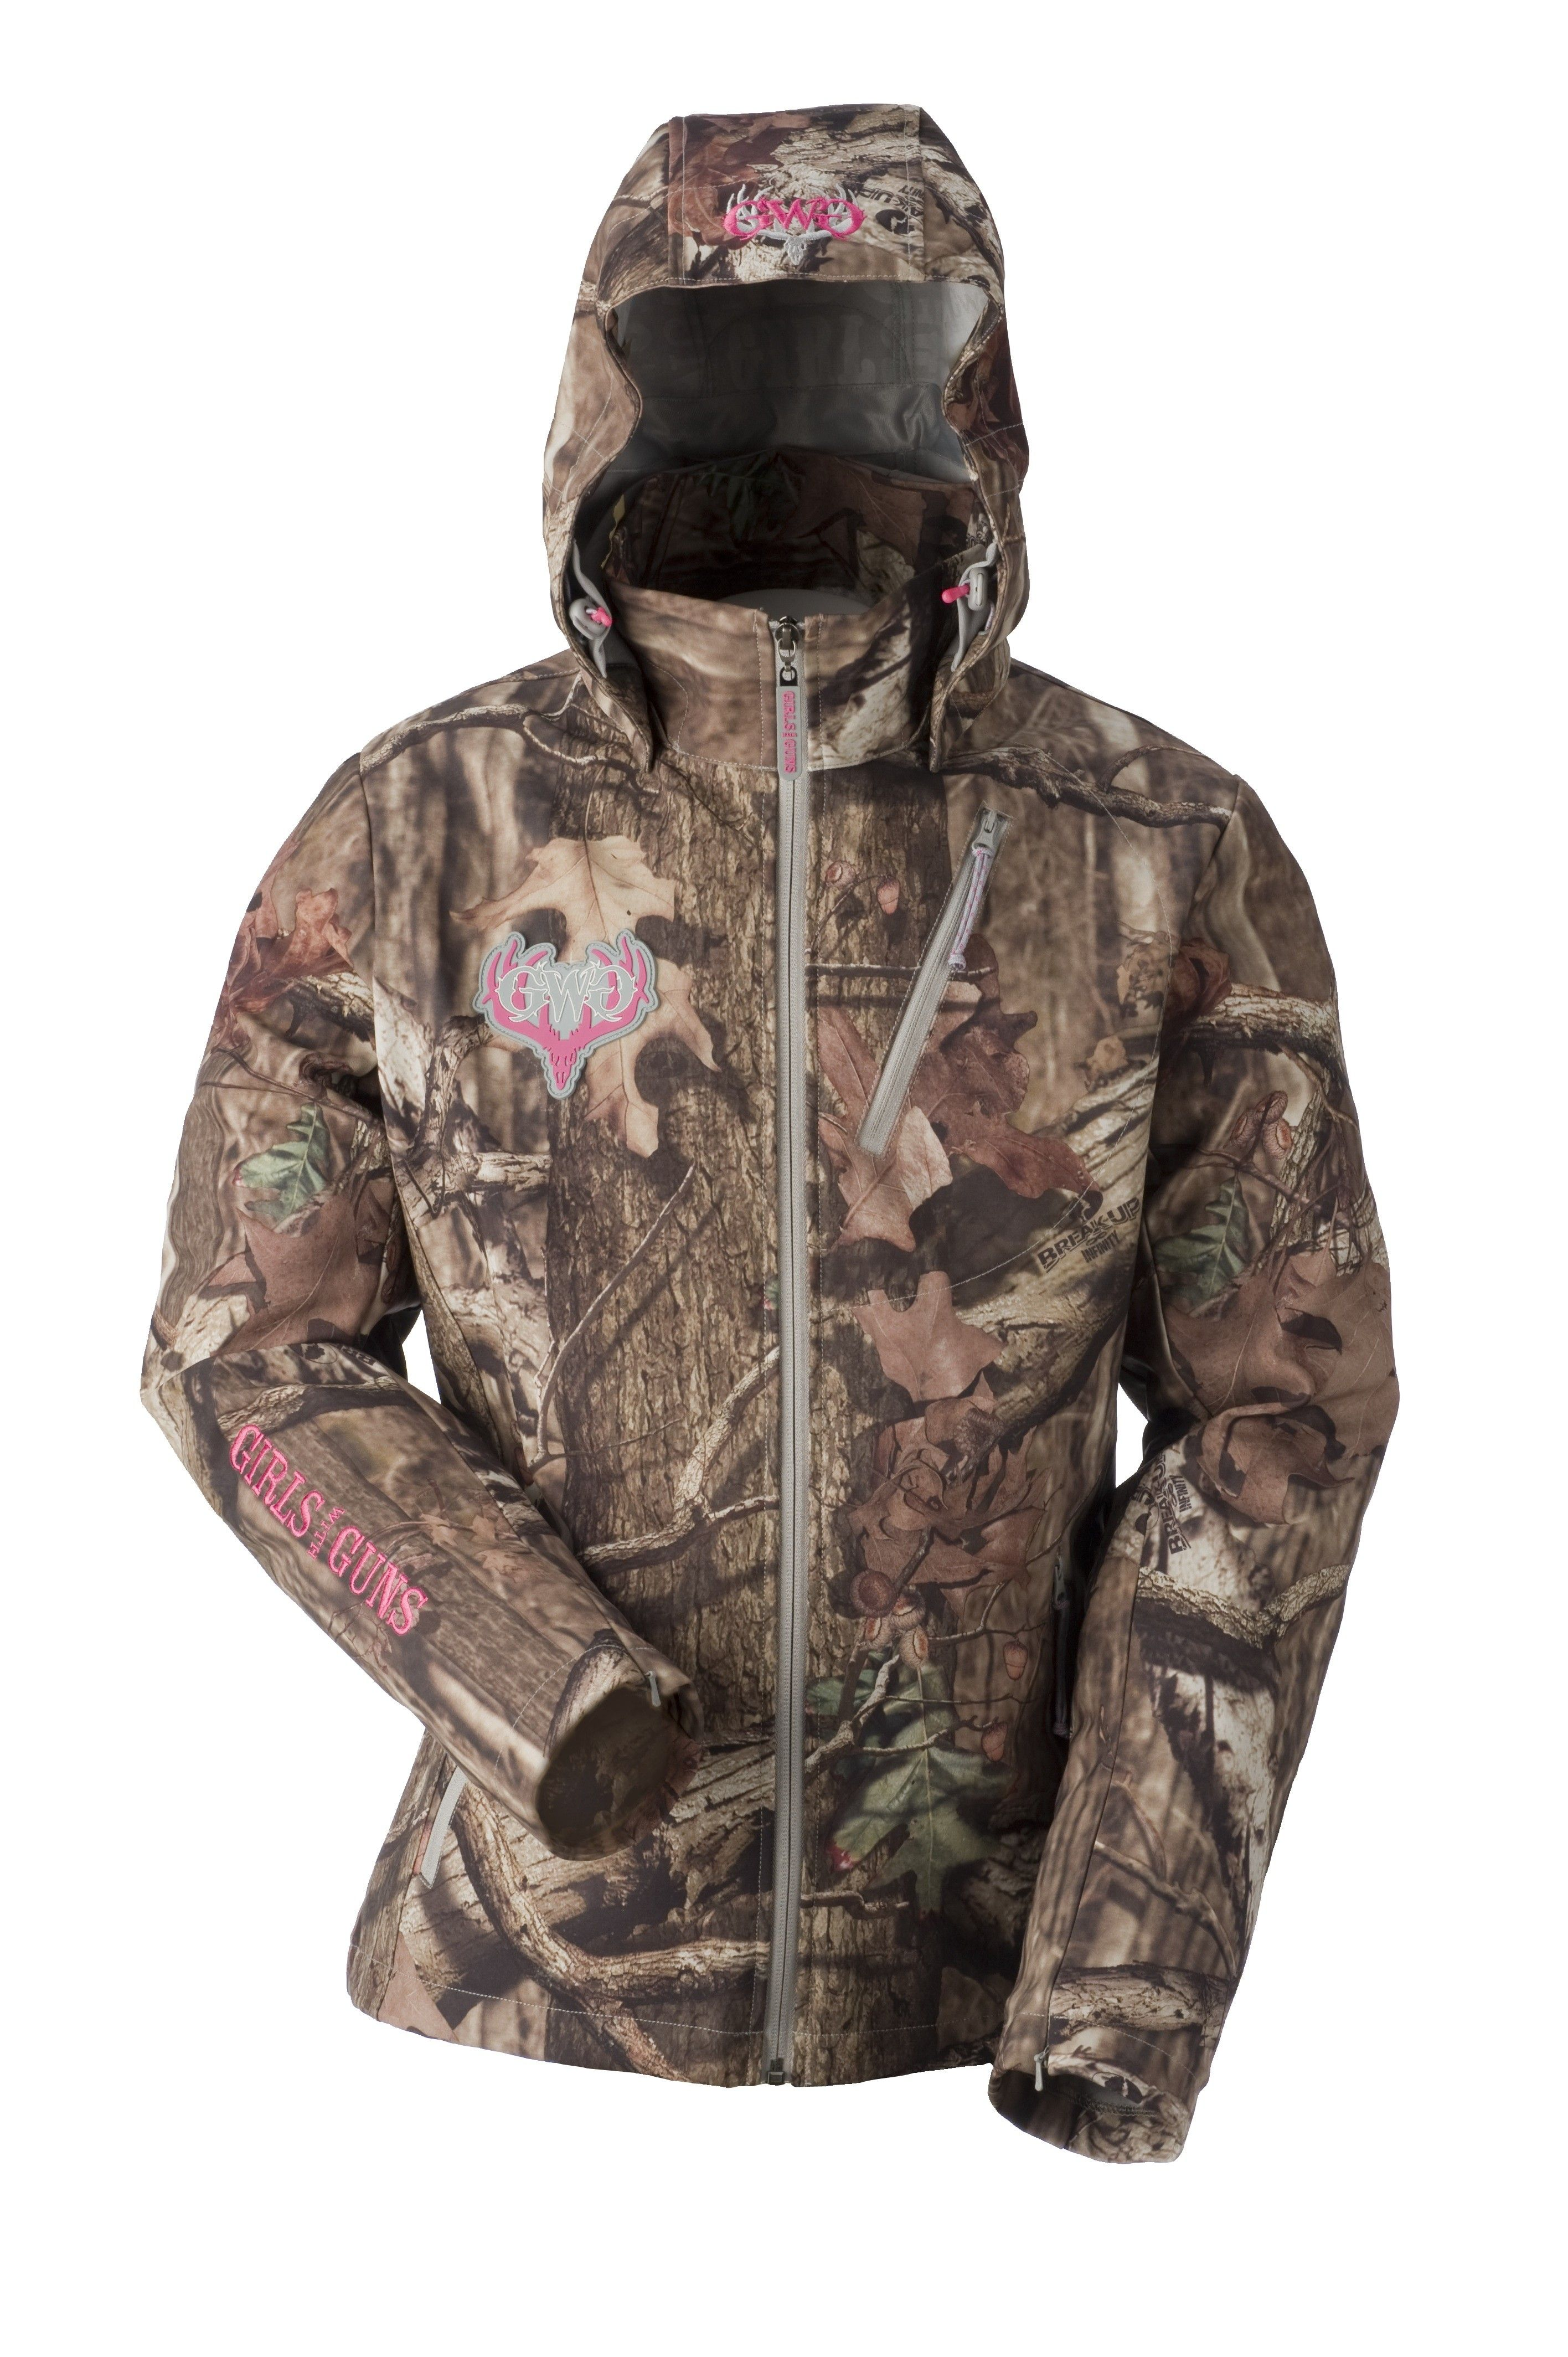 NEW 2014 GWG Mossy Oak Hunting Line GWG Midweight Jacket